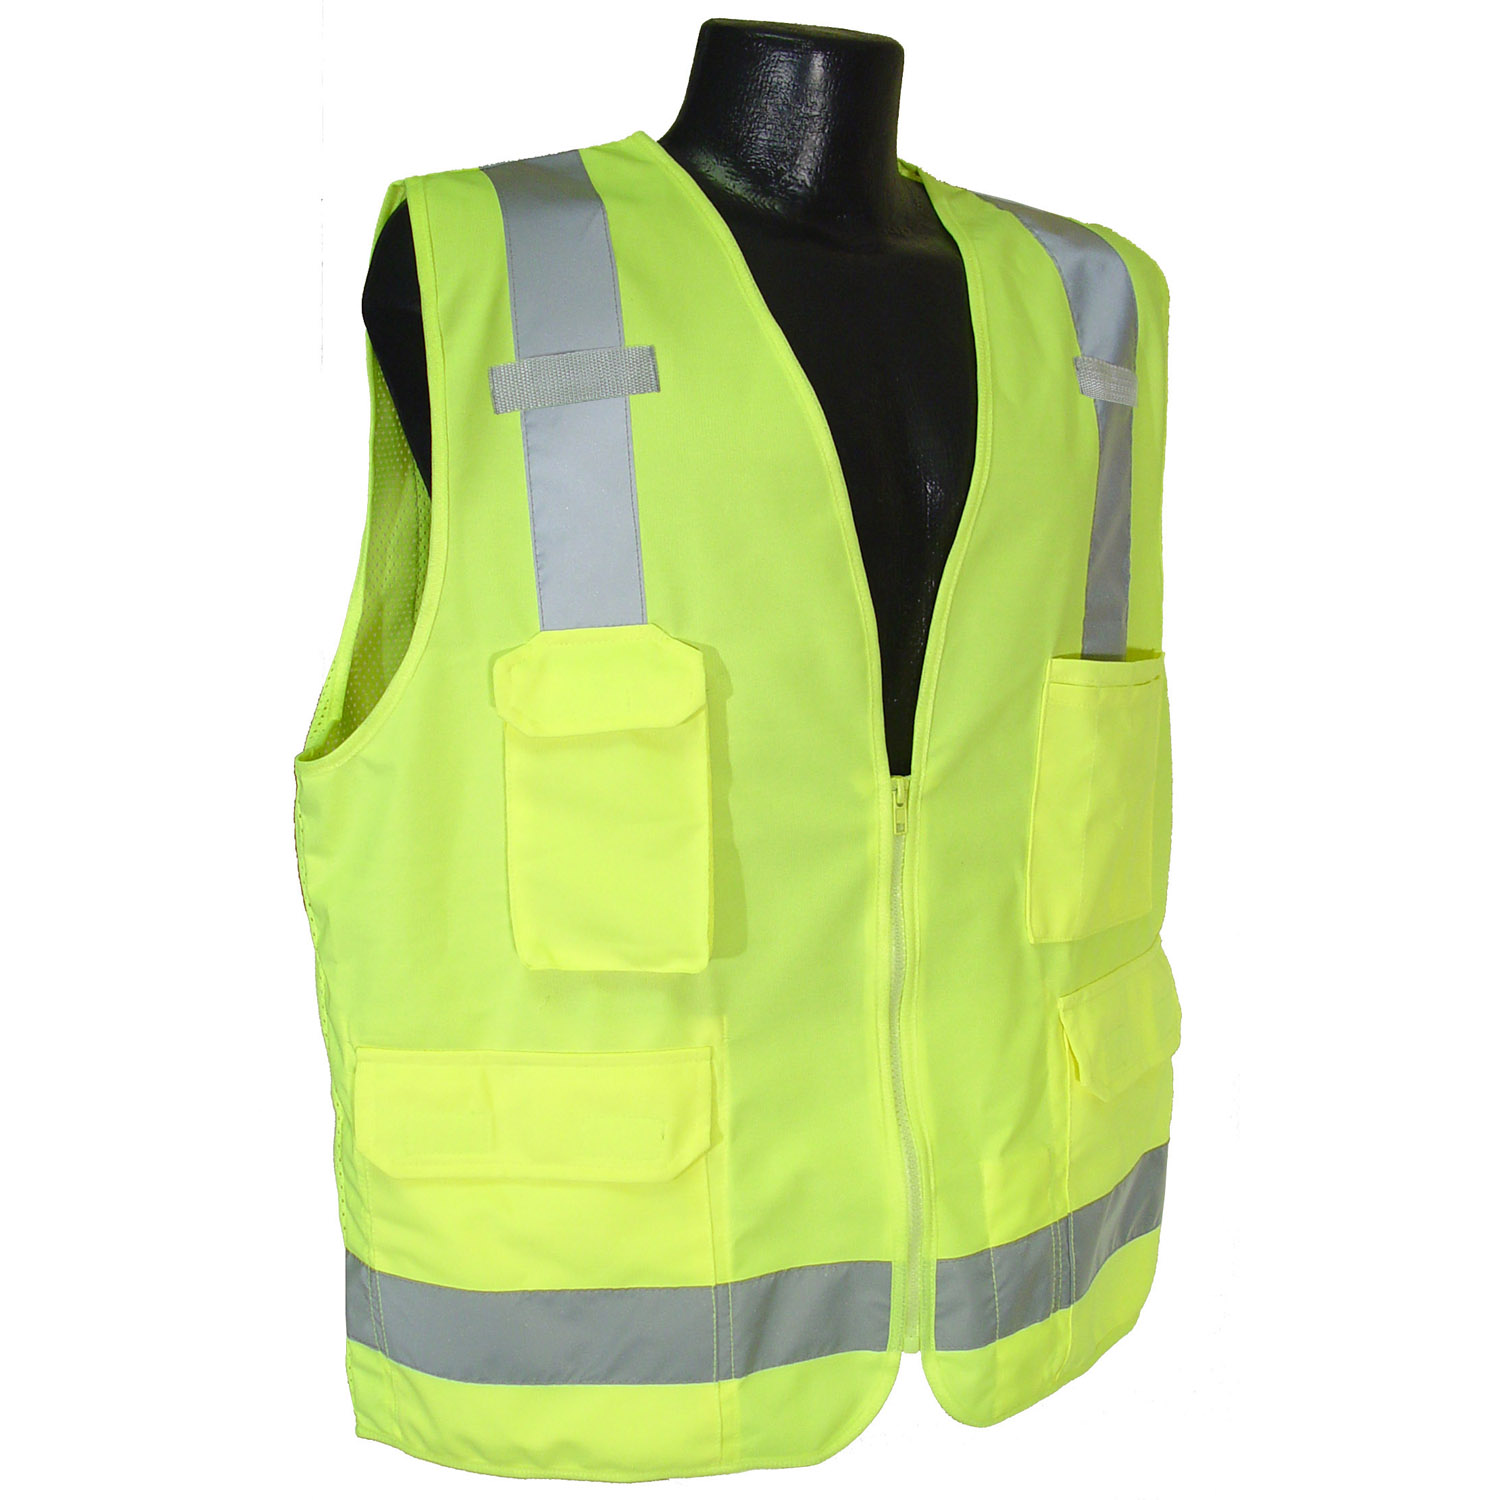 Radians SV7 Surveyor Type R Class 2 Safety Vest